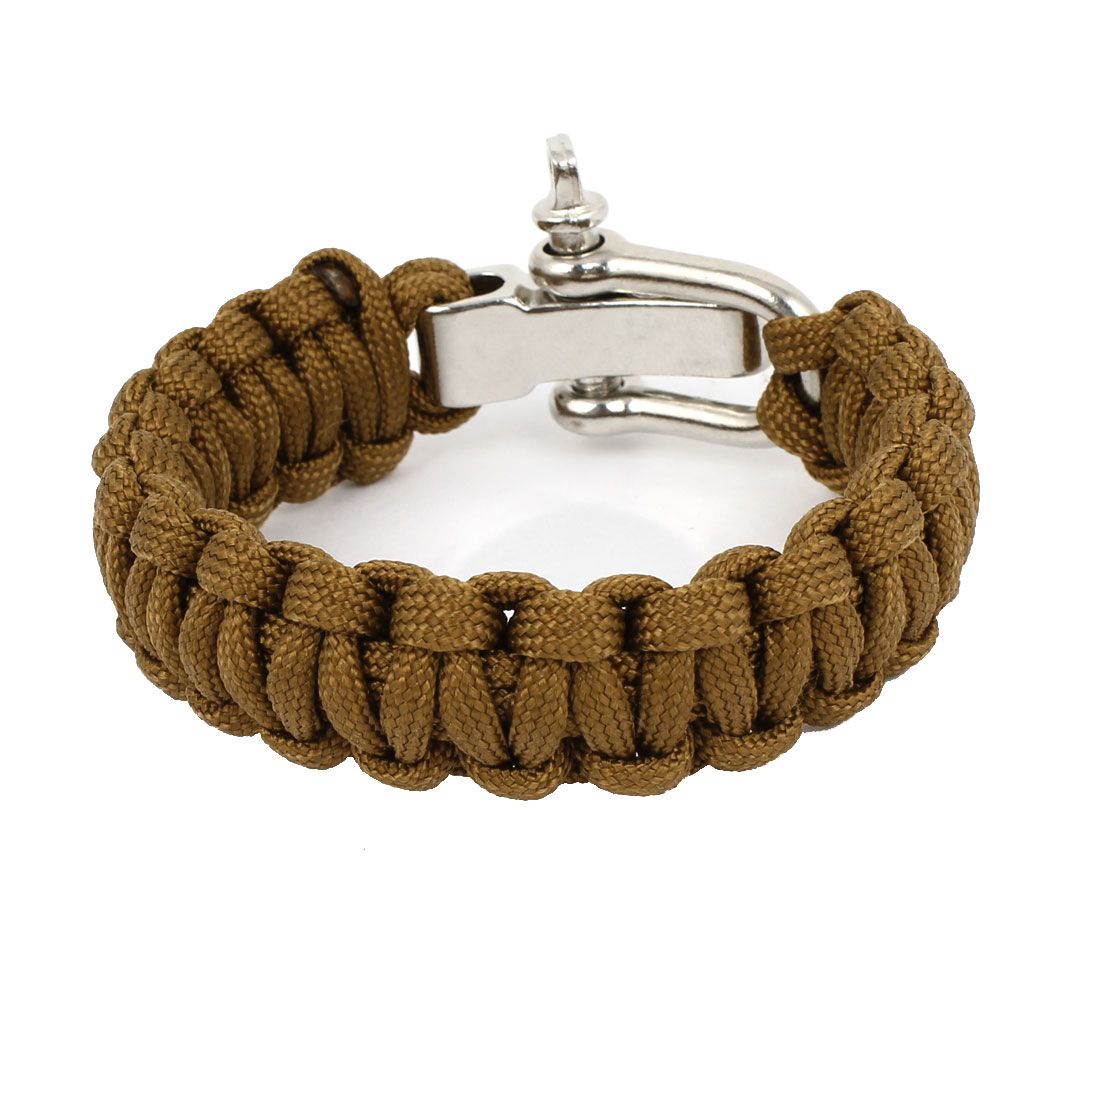 Outdoor Camping Brown Nylon Weave Textured Self-Rescue Cord Survival Bracelet